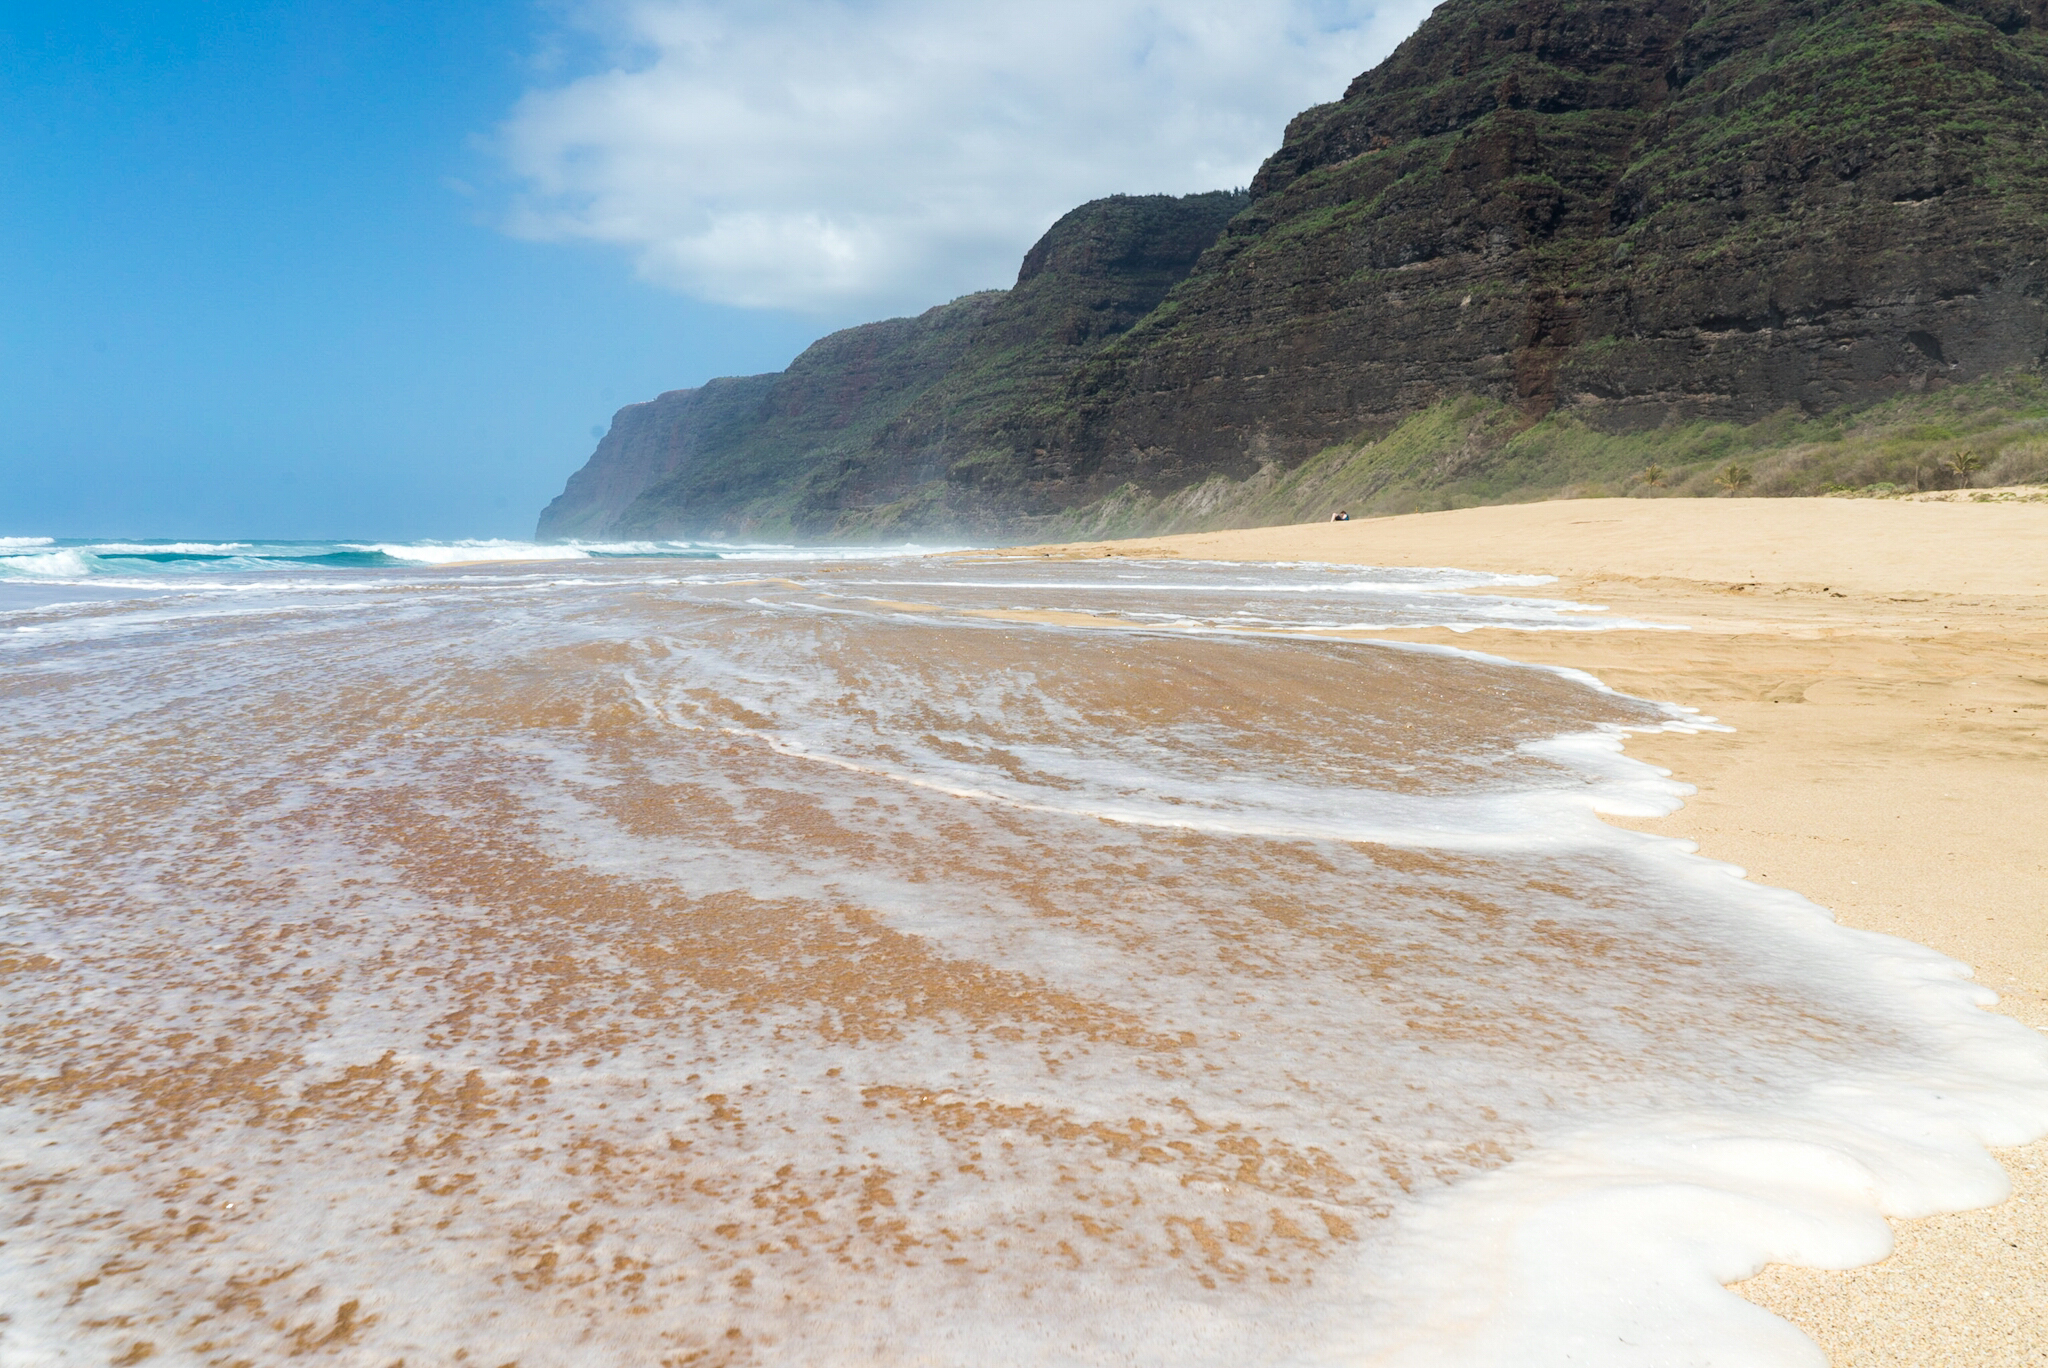 Polihale Beach in Kauai, Hawaii